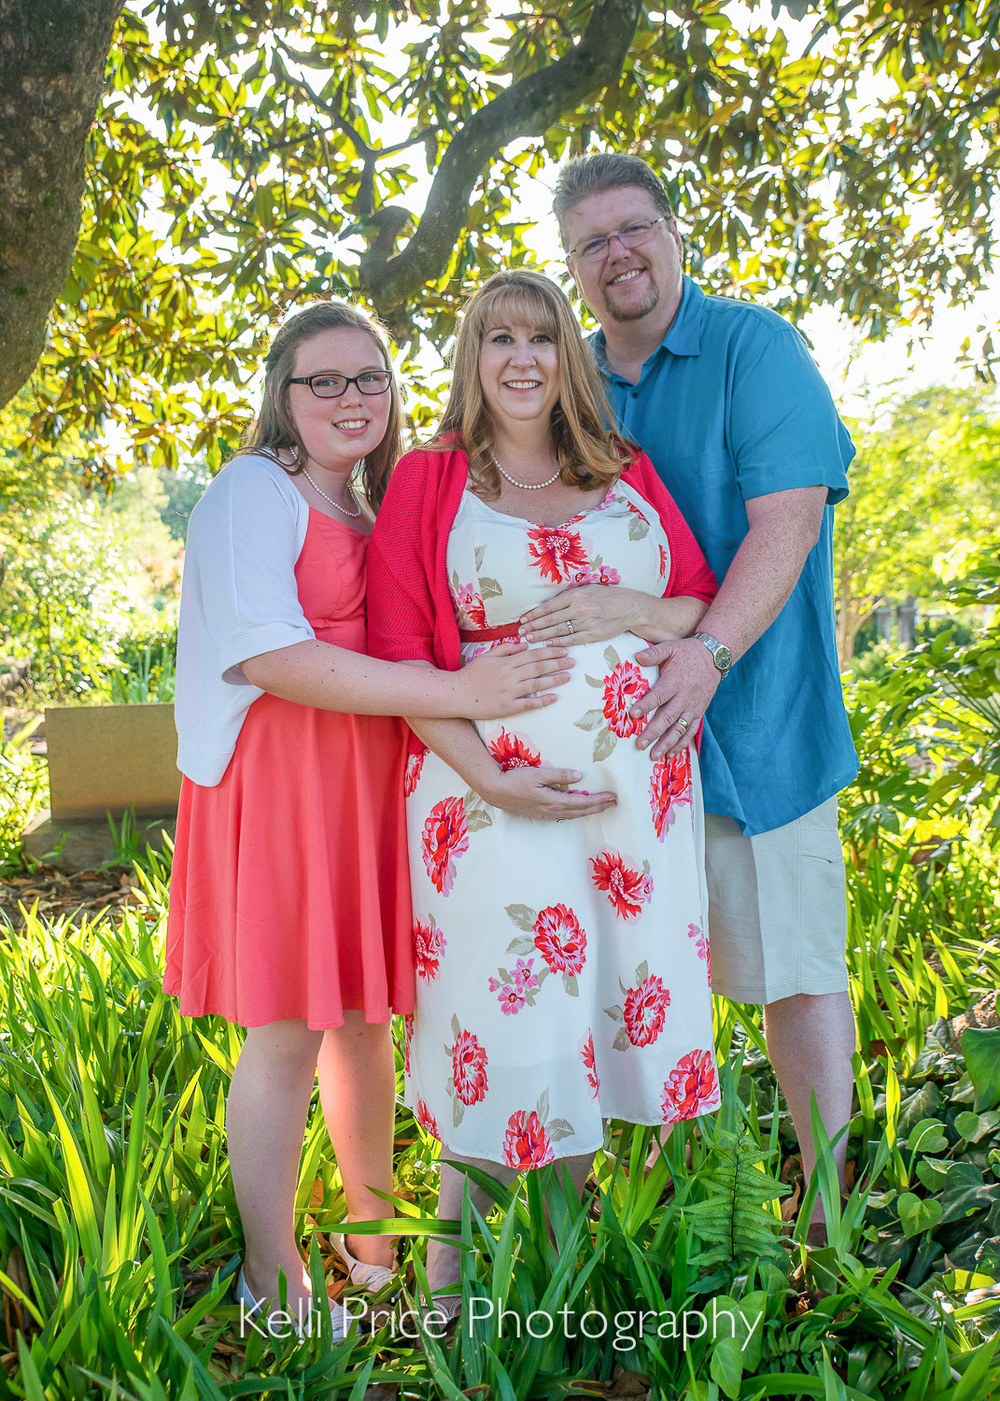 Atlanta Maternity & Family Session - Historic Oakland Cemetery, GA